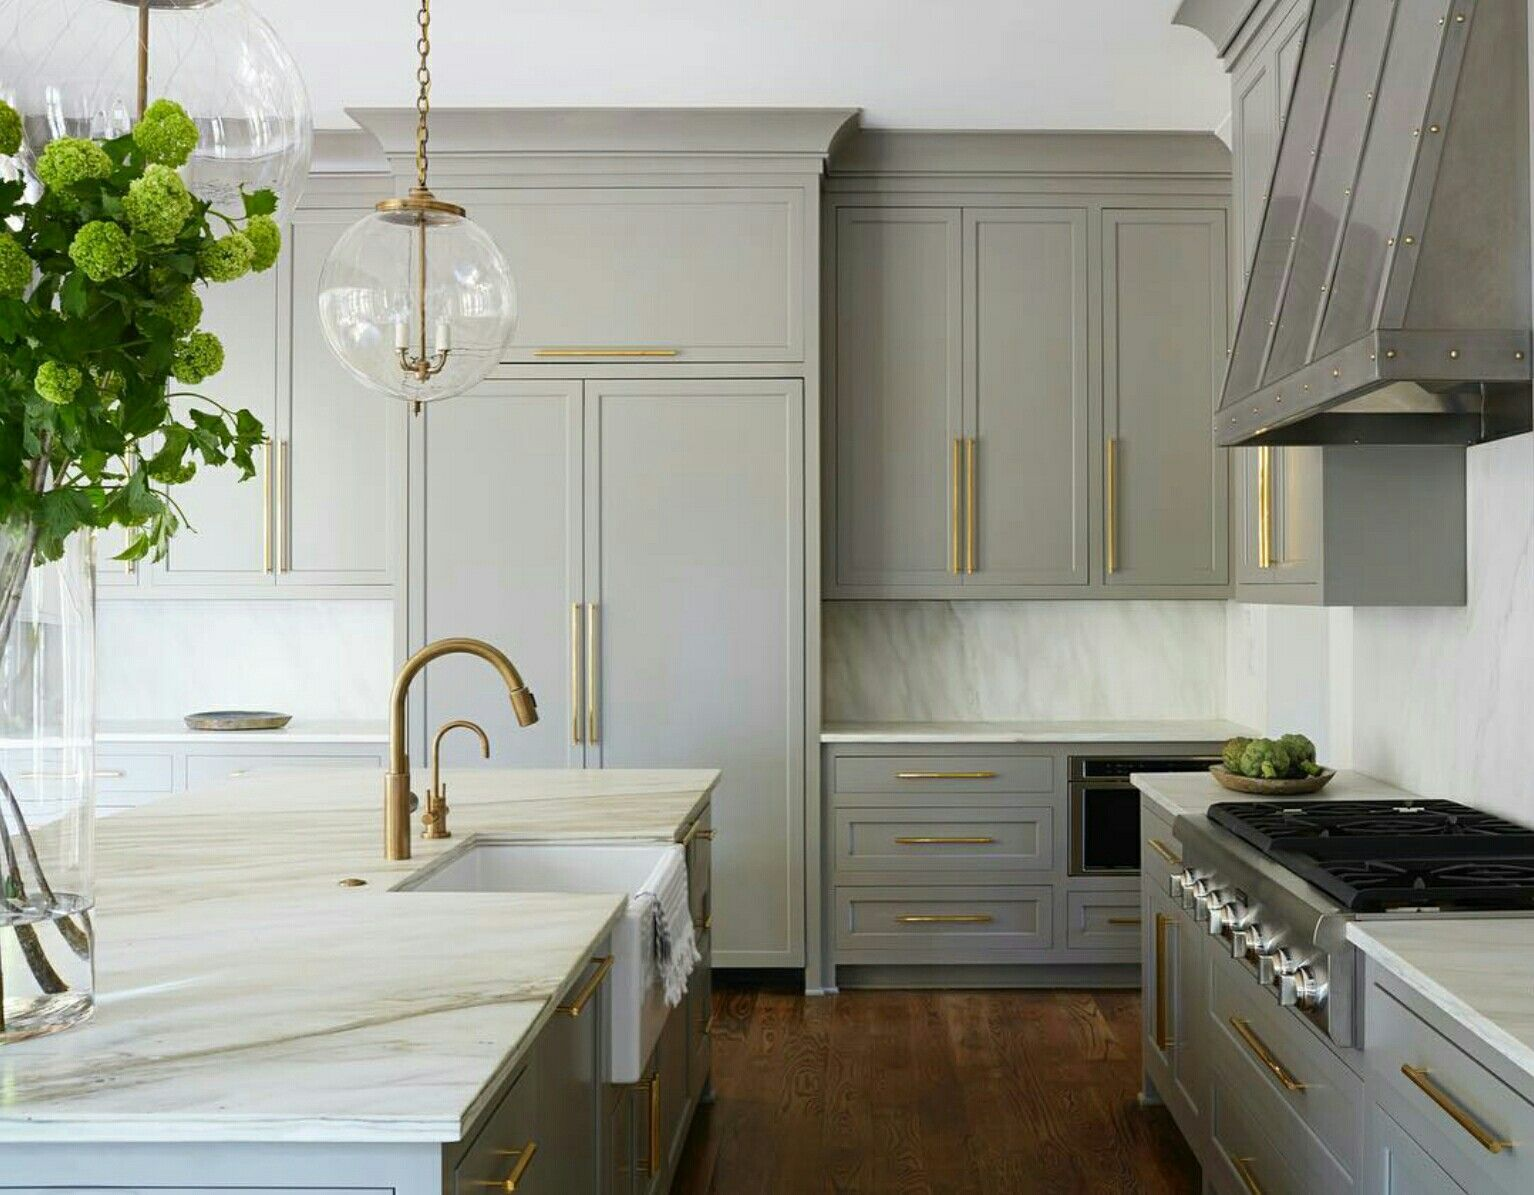 Pin de Troy Wilson en Kitchens | Pinterest